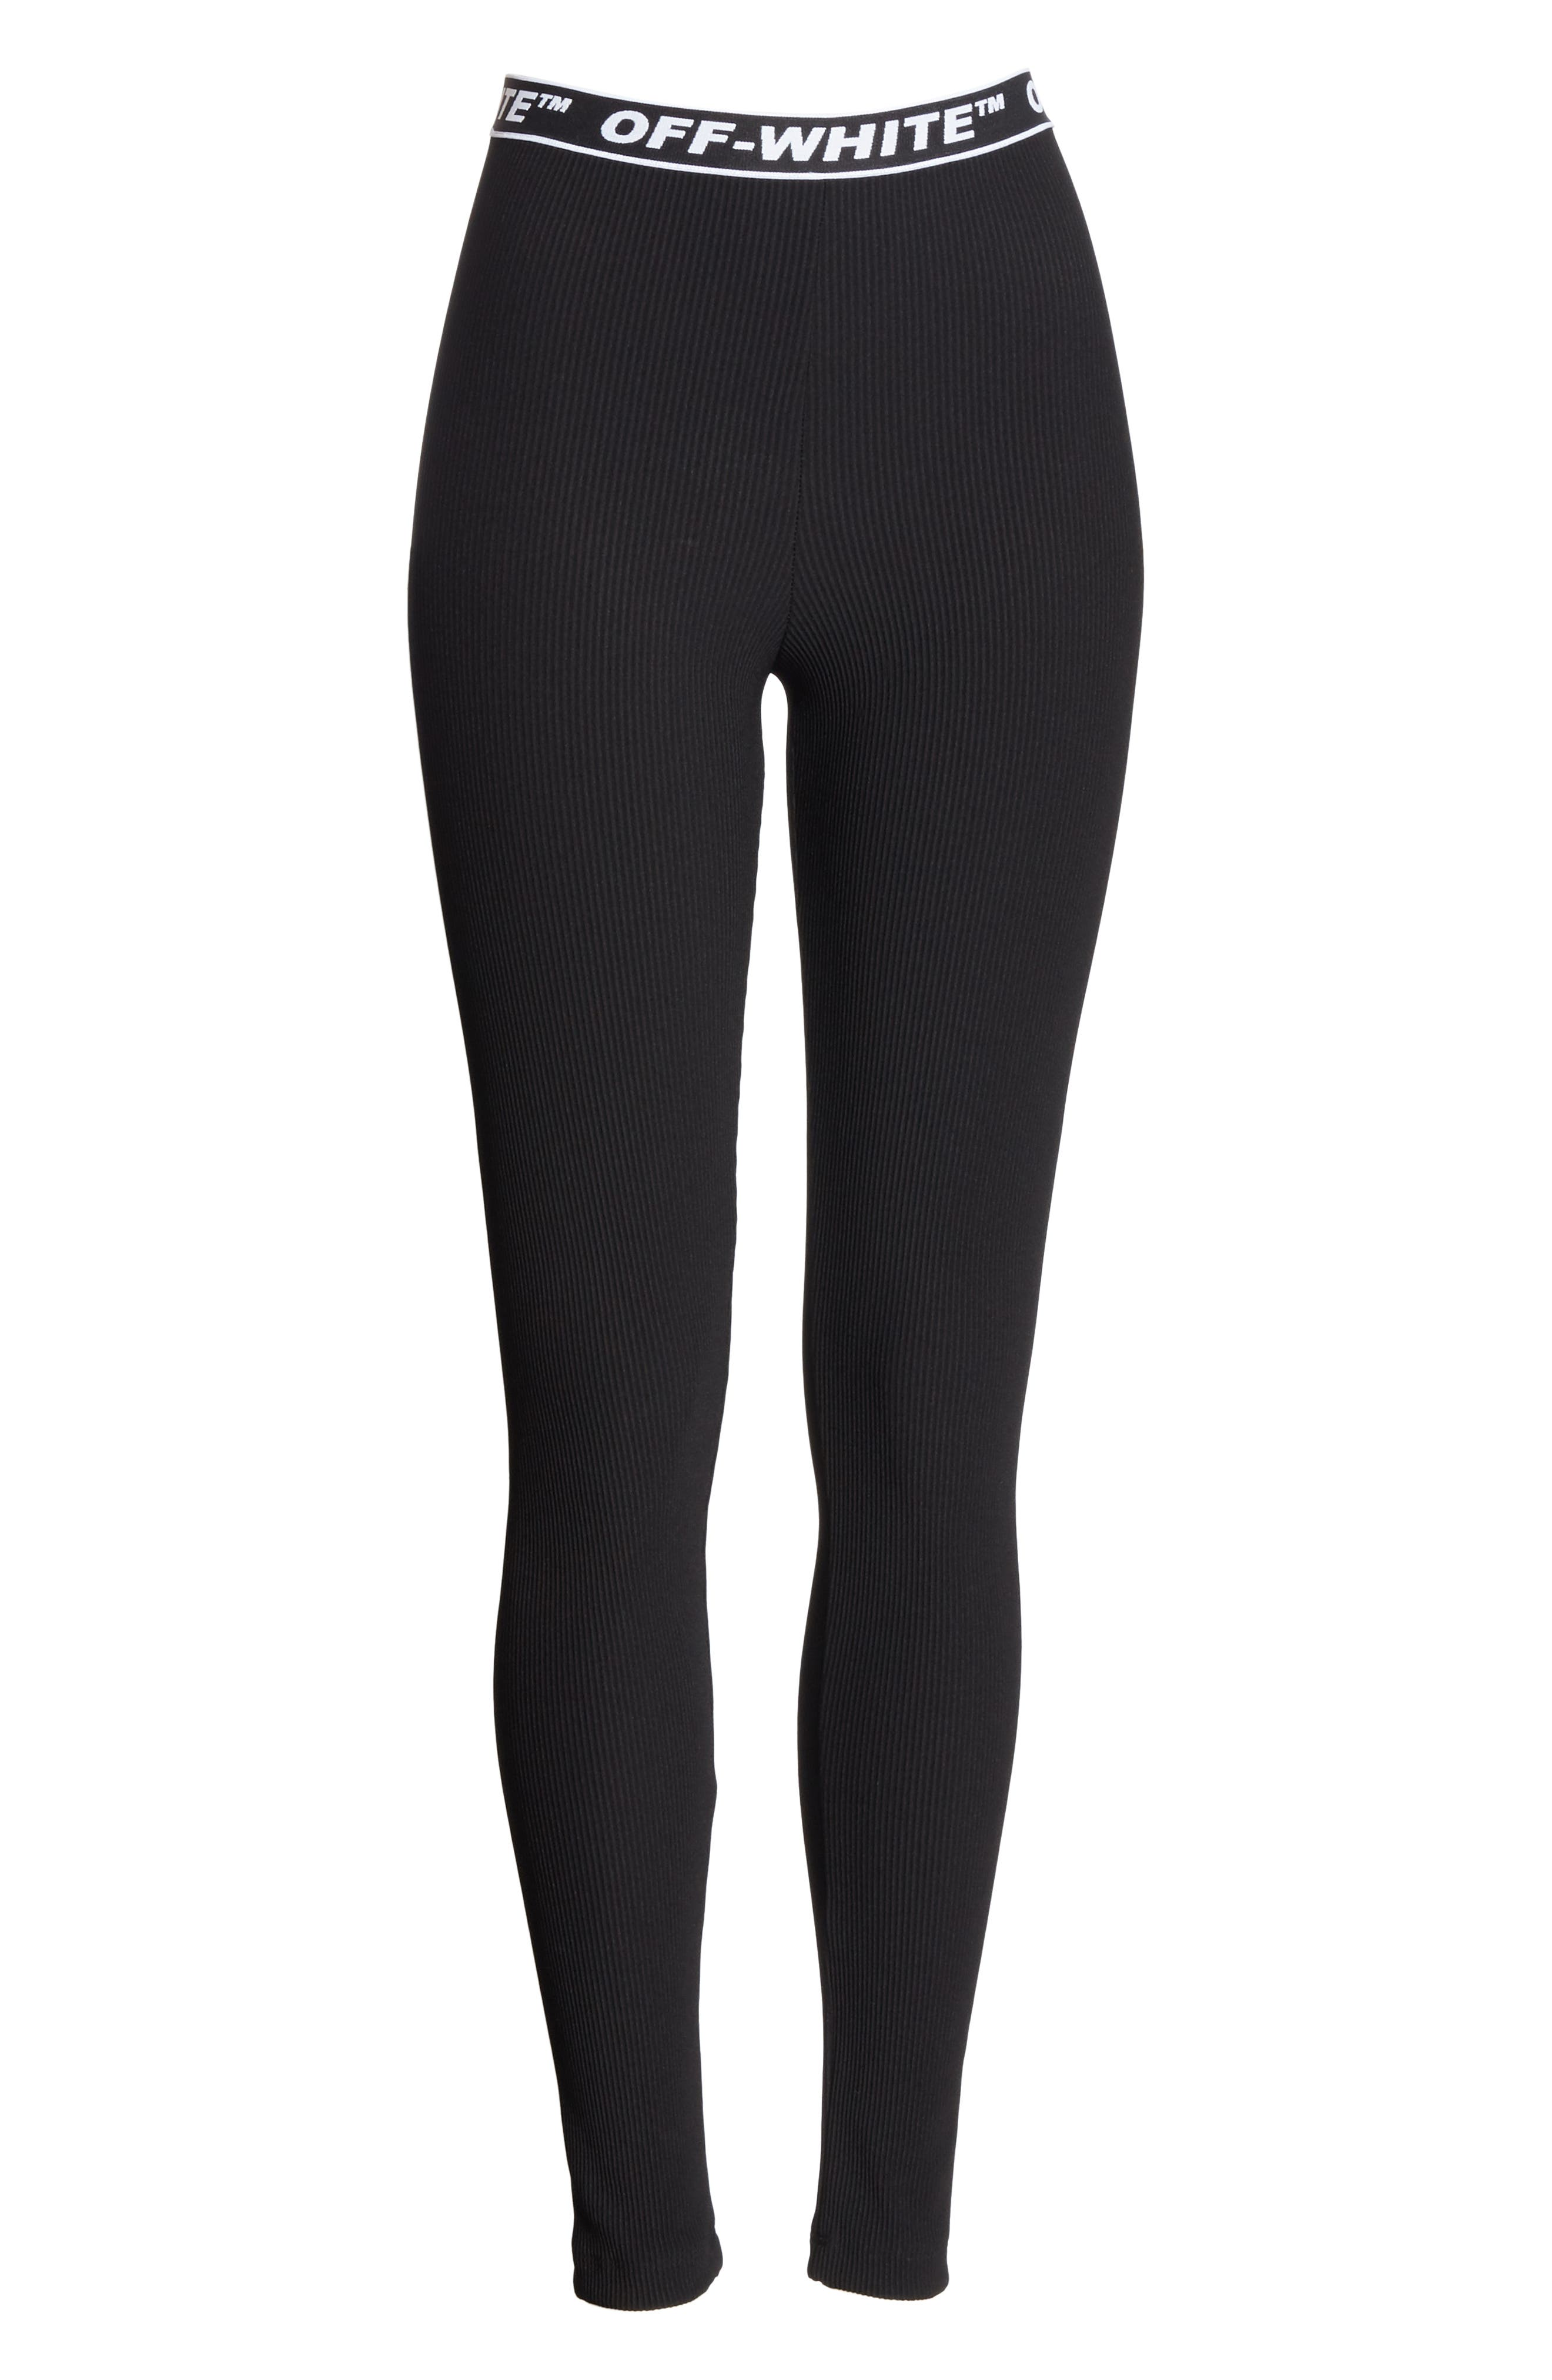 Cannette Simple Logo Leggings,                             Alternate thumbnail 6, color,                             001